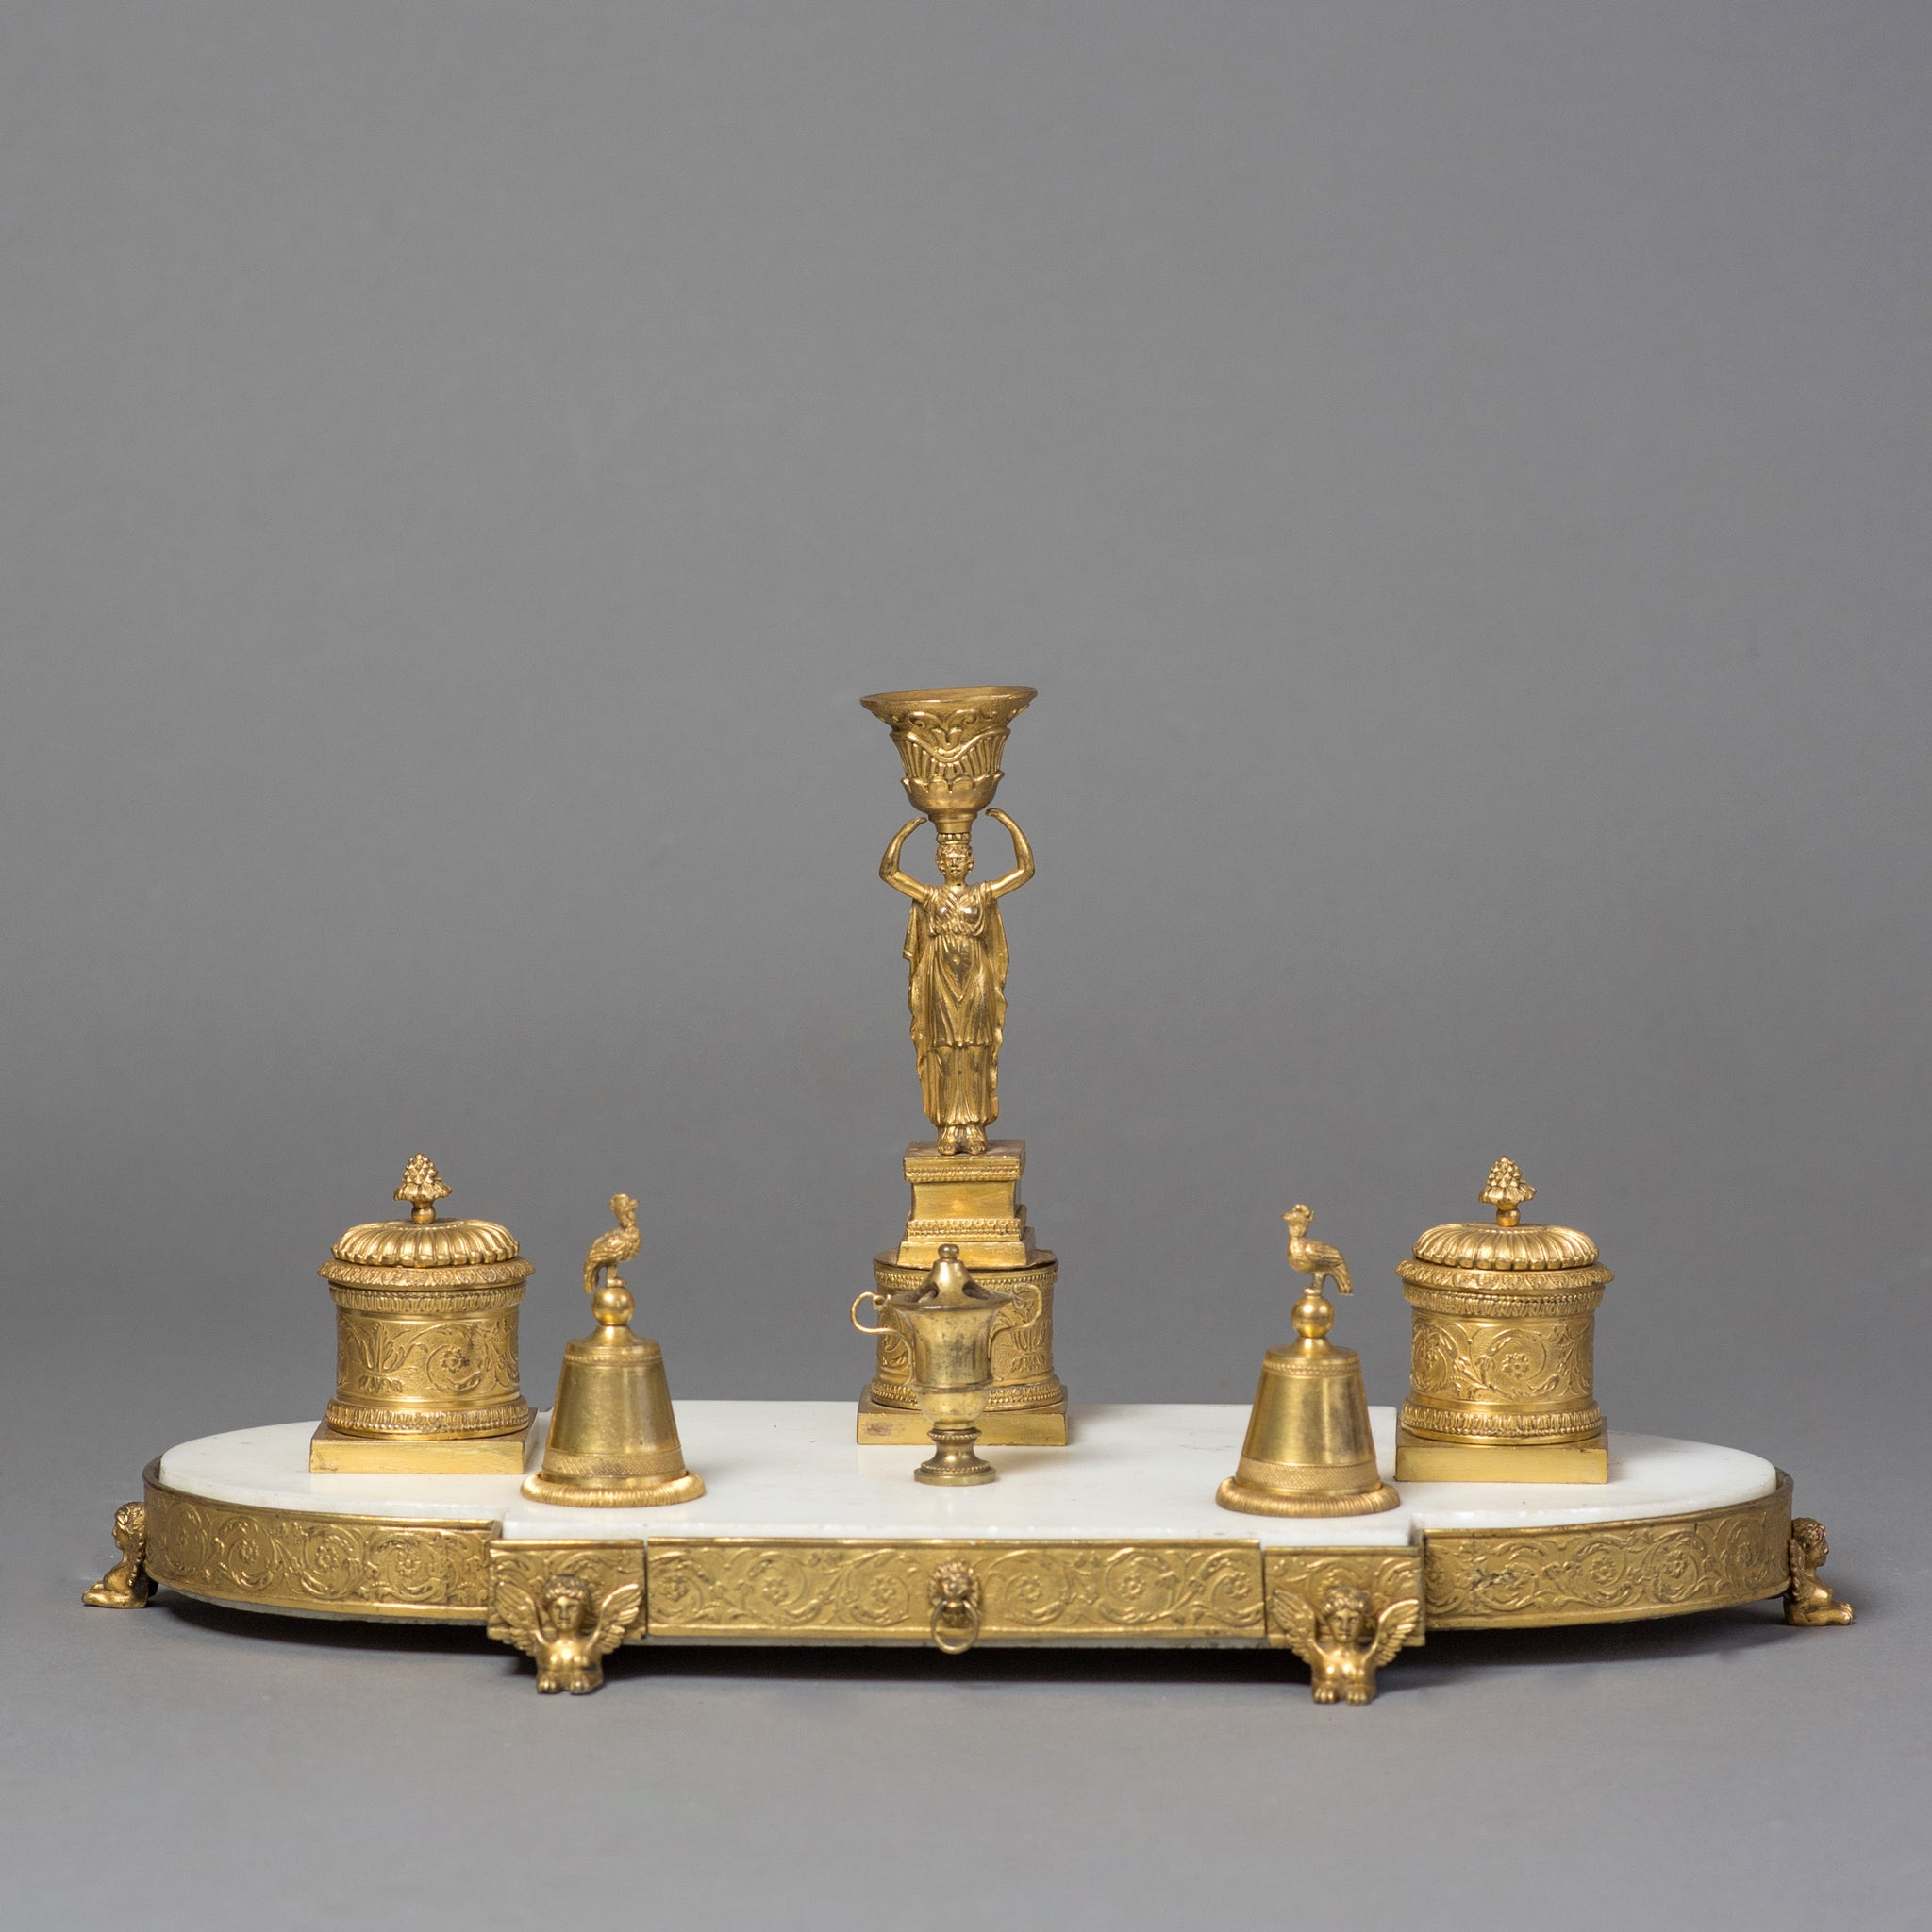 A Fine Late 18th Century Ormolu and Marble Desk Stand